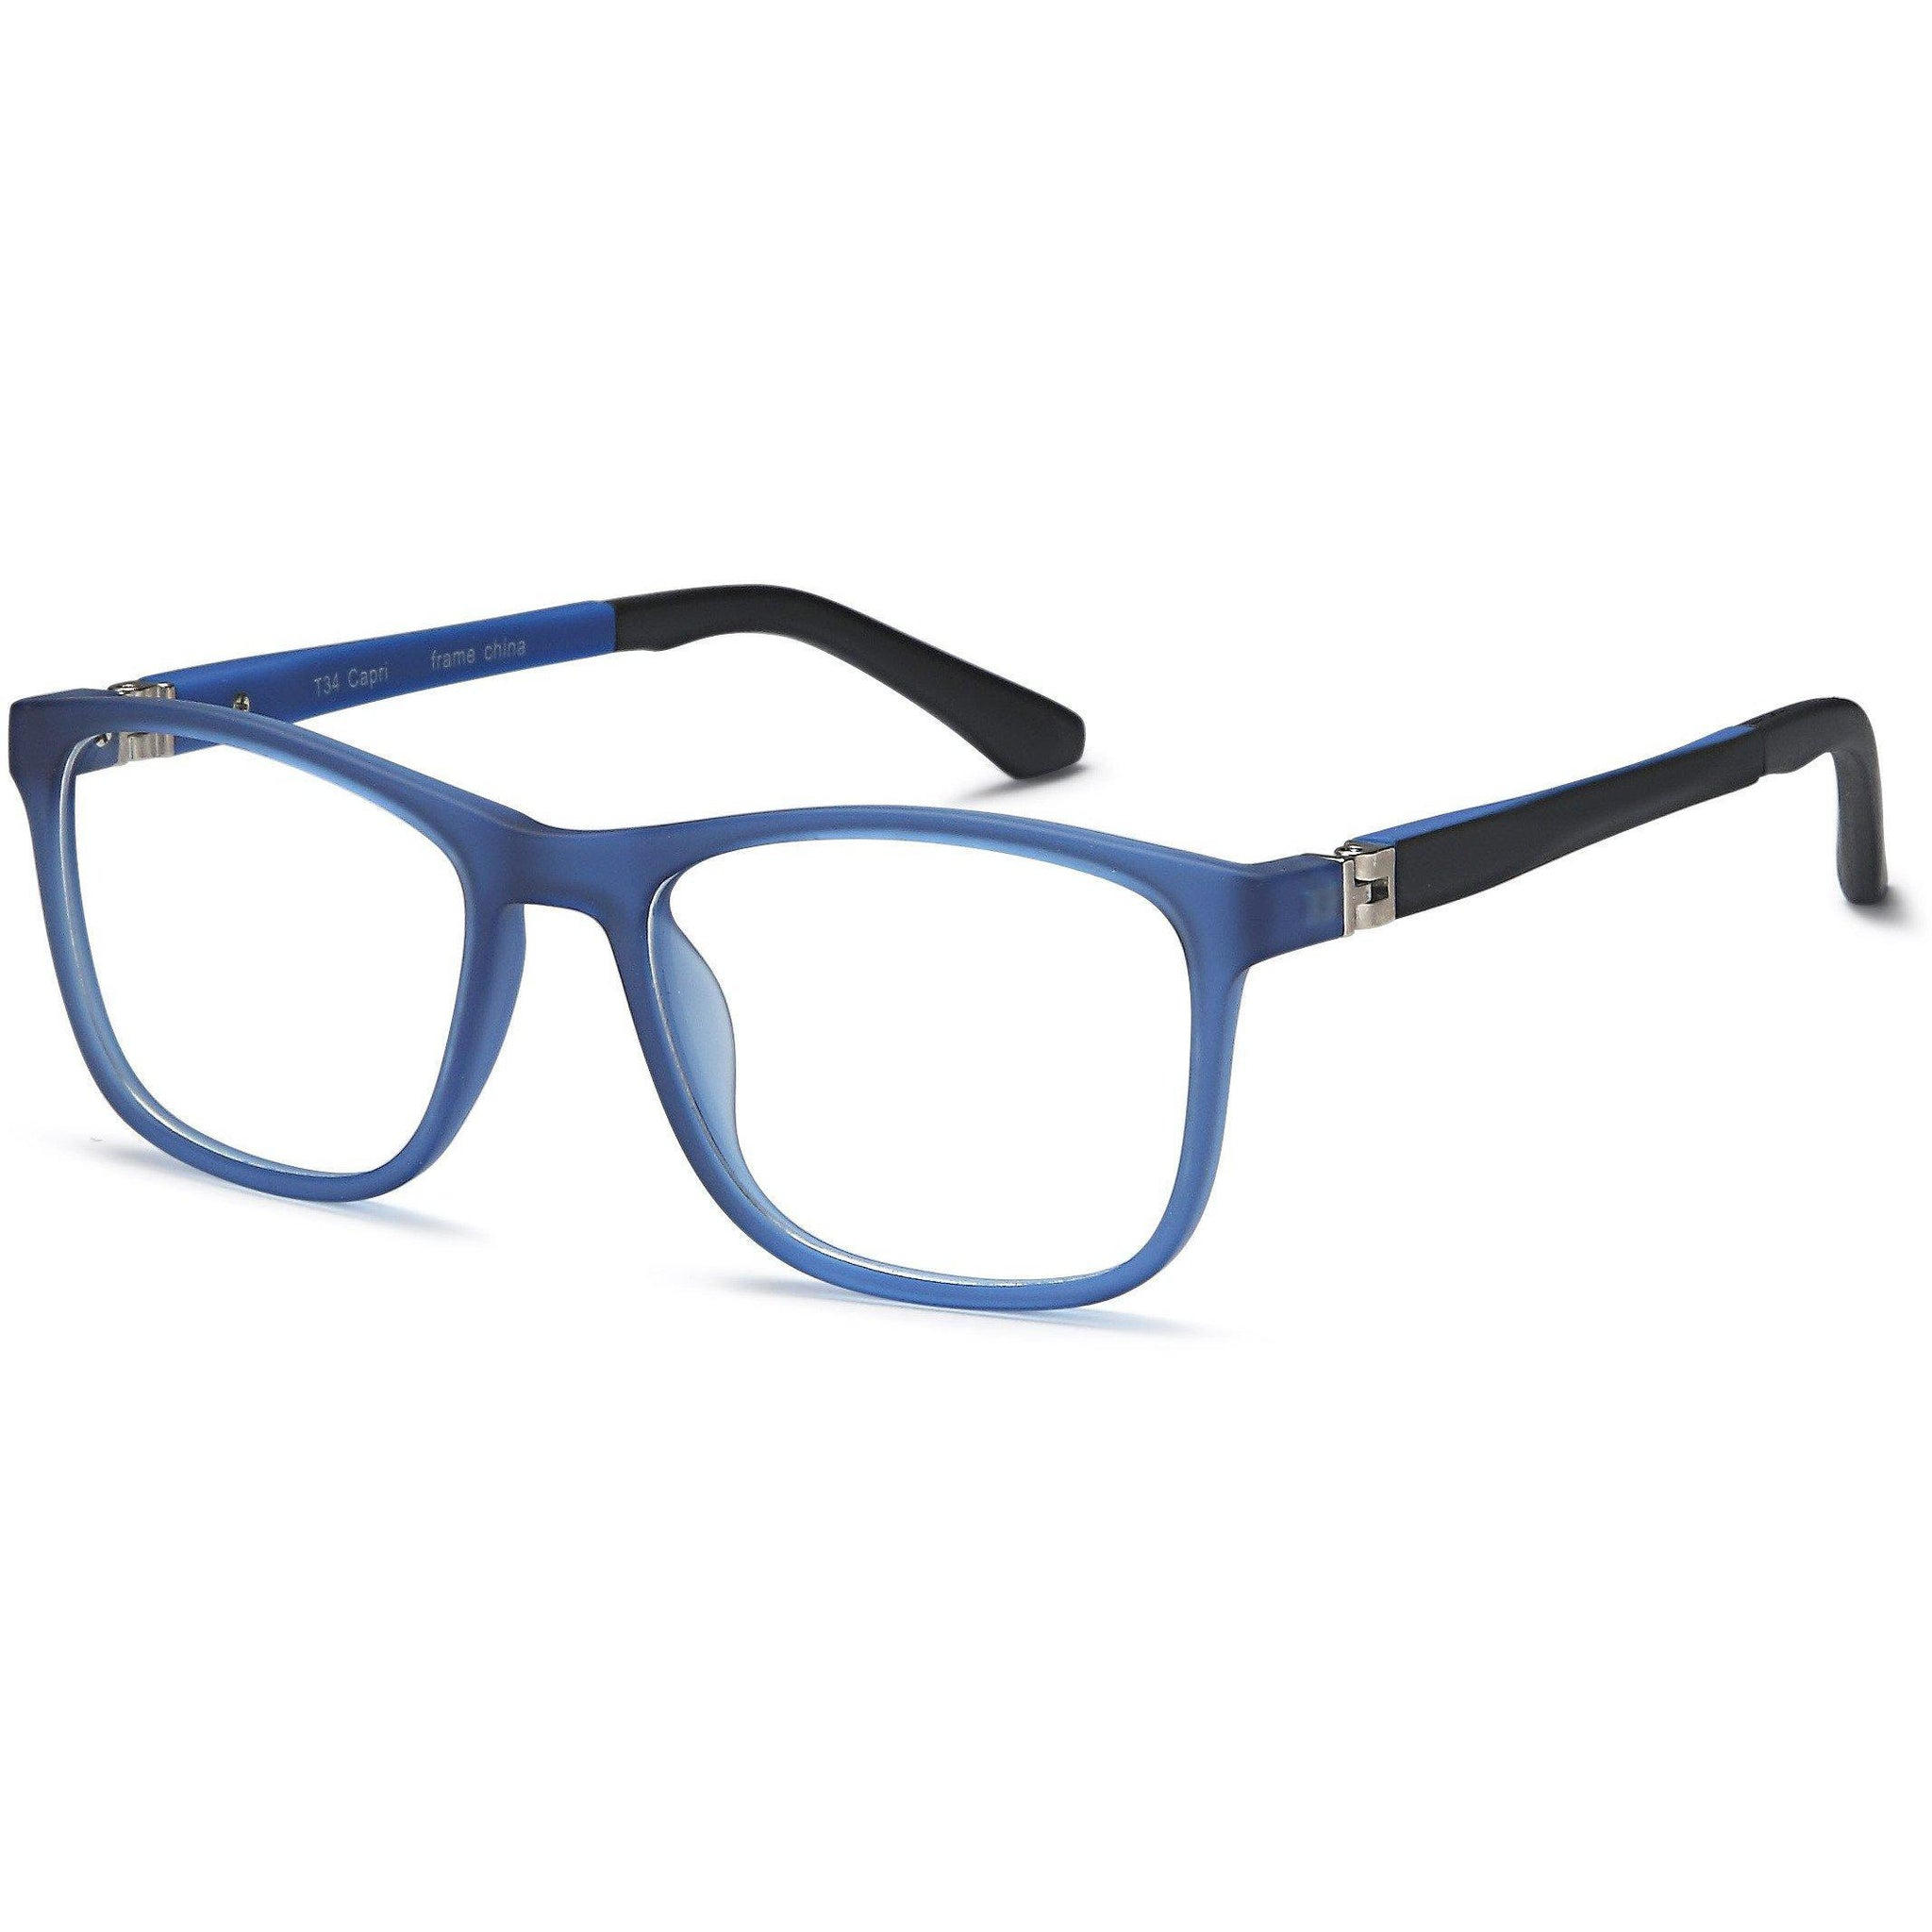 OnTrend Prescription Glasses T 34 Eyeglasses Frames